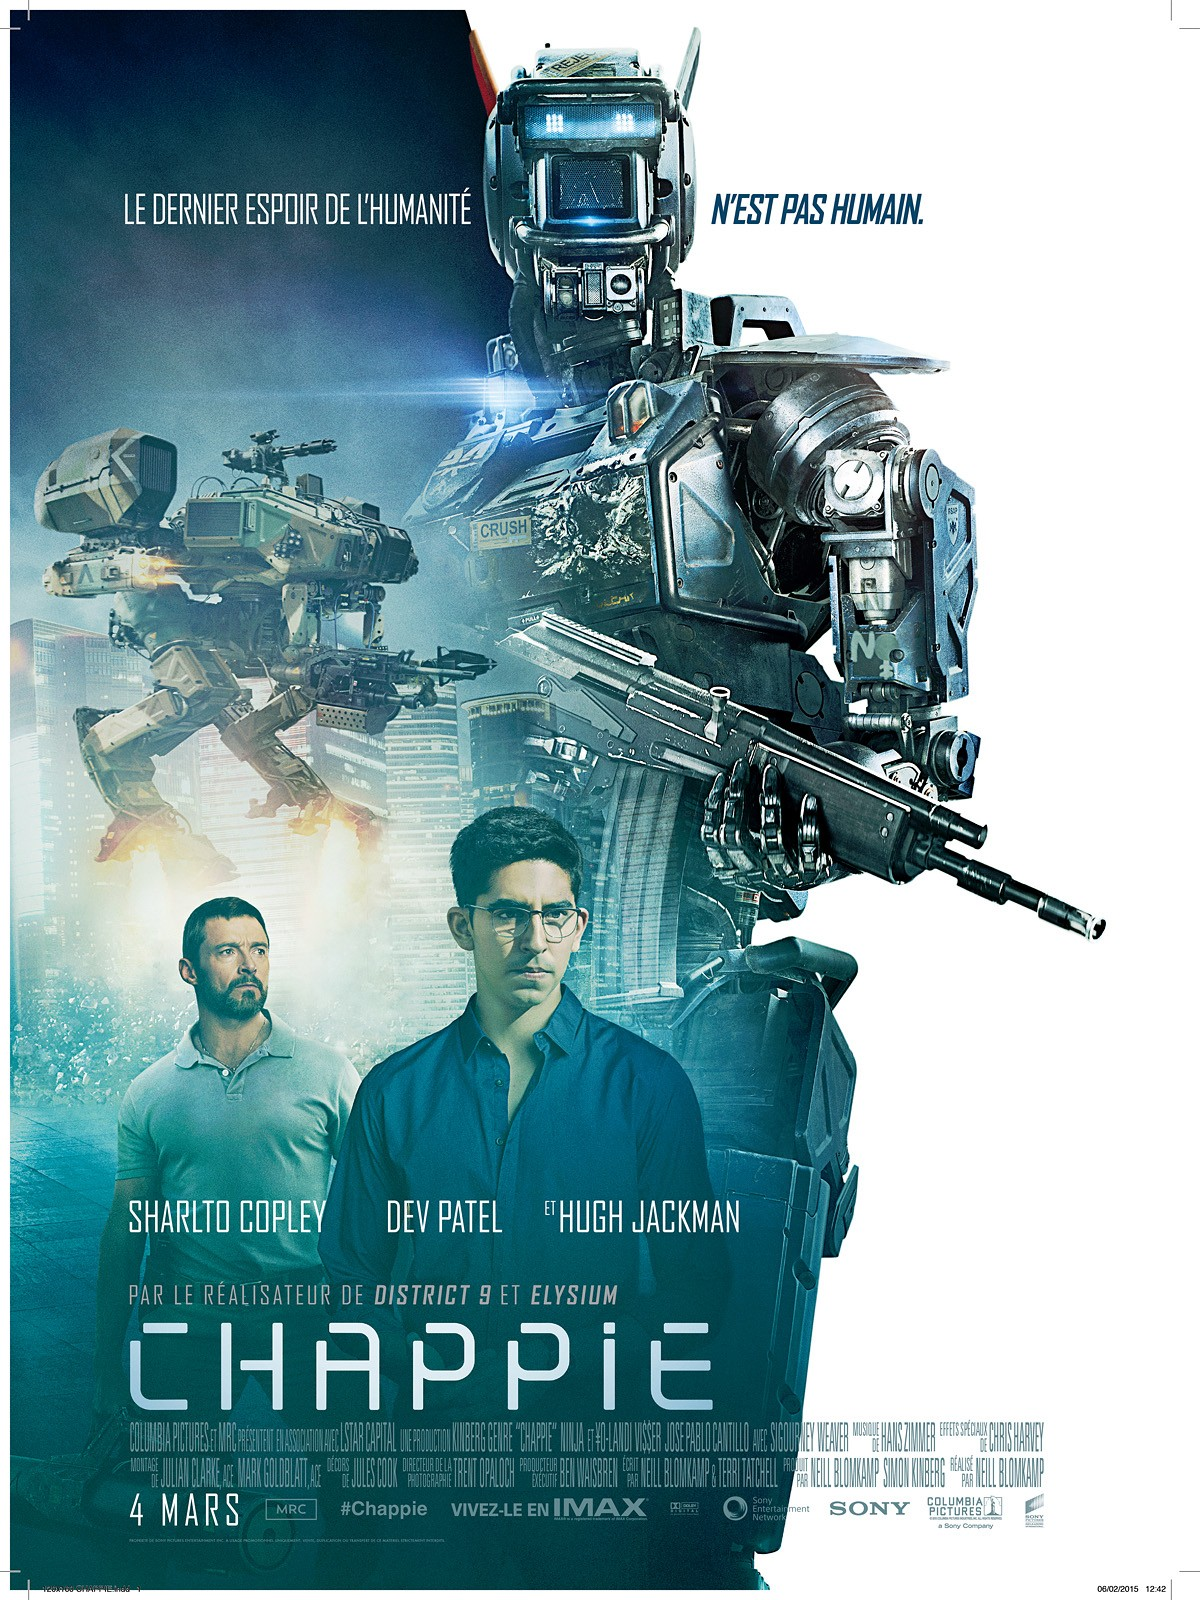 Chappie movie Triumph Tiger Explorer